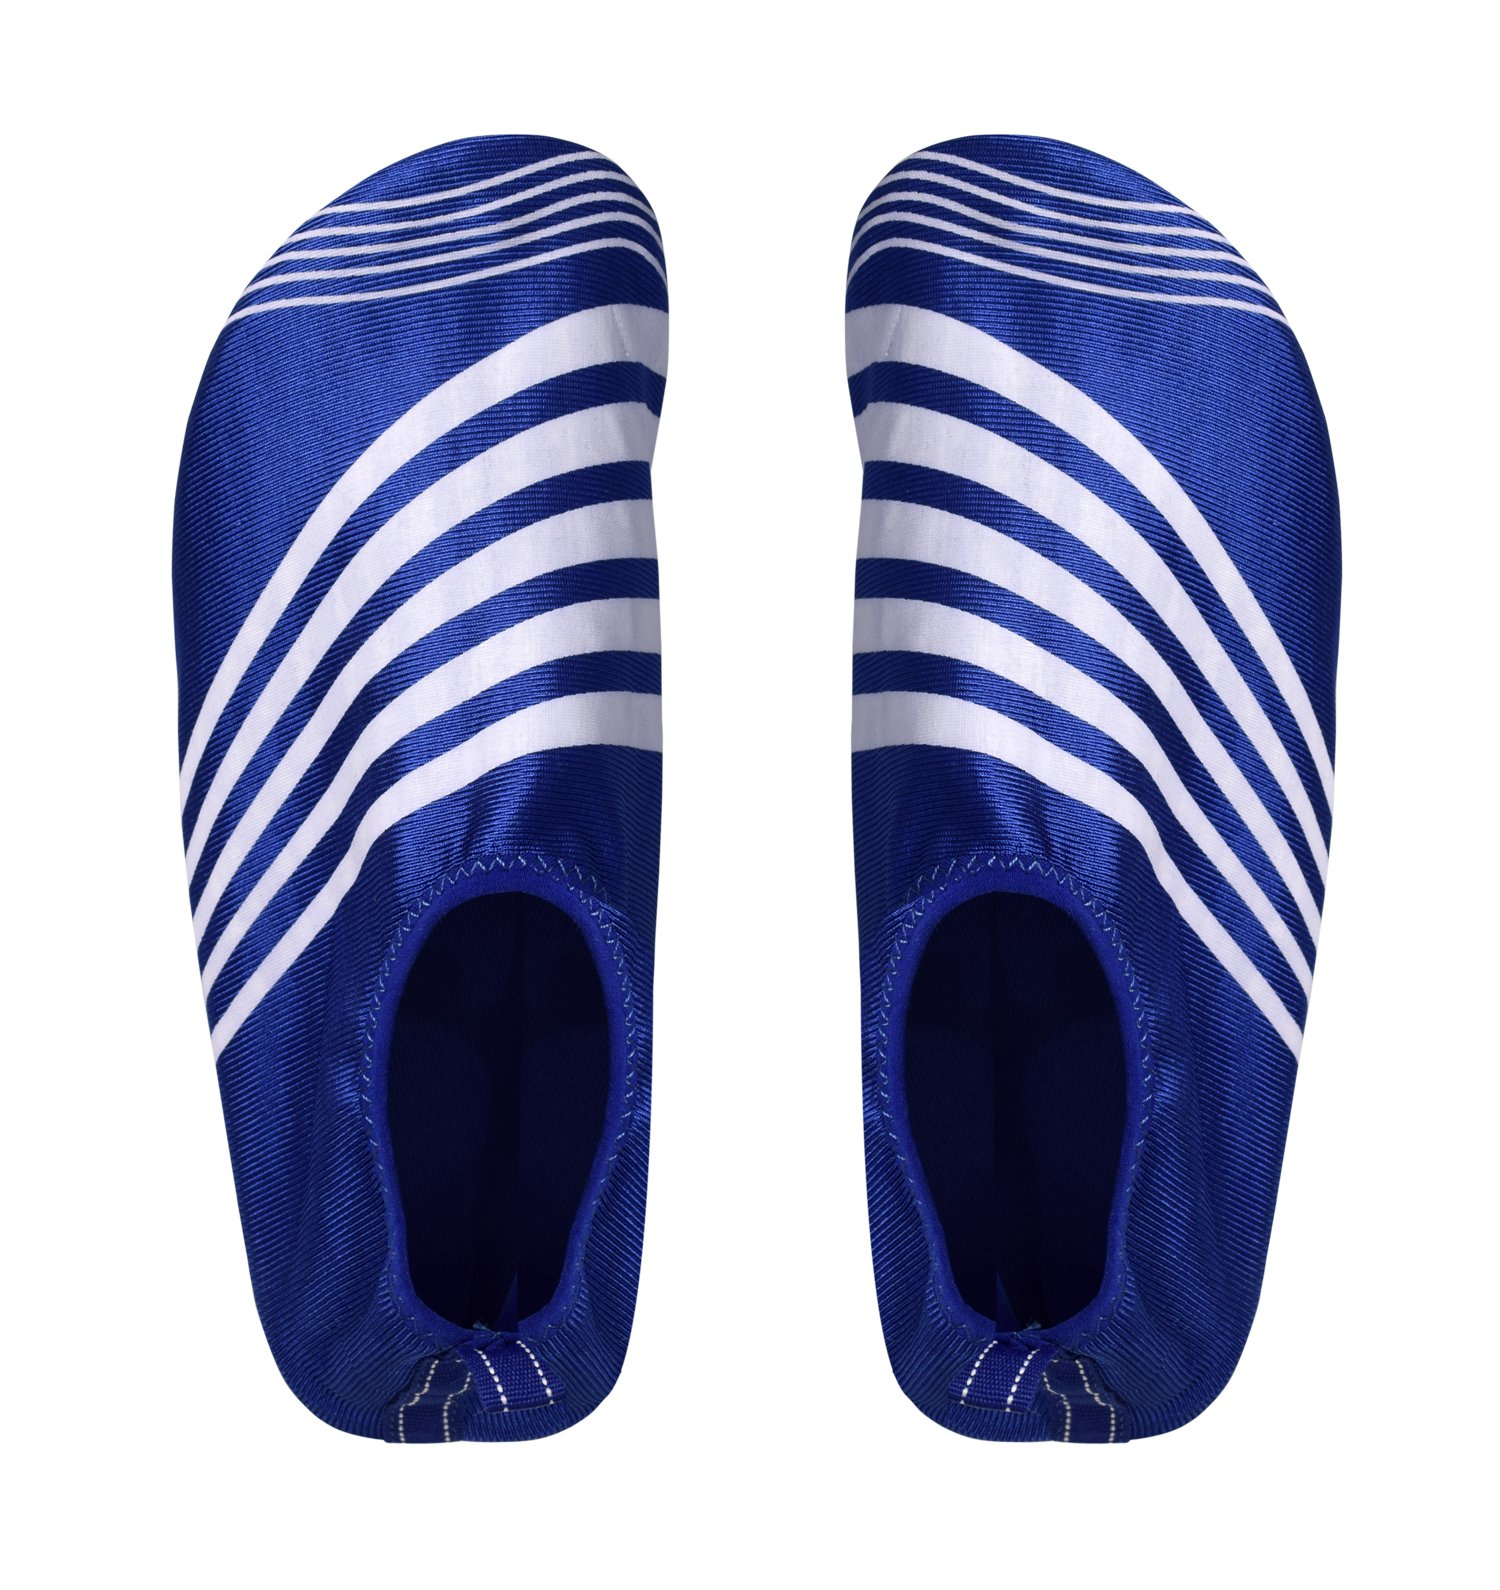 Peach Couture Mens Athletic Water Shoes Slip on Quick Drying Aqua Socks (X-Large, Blue White)